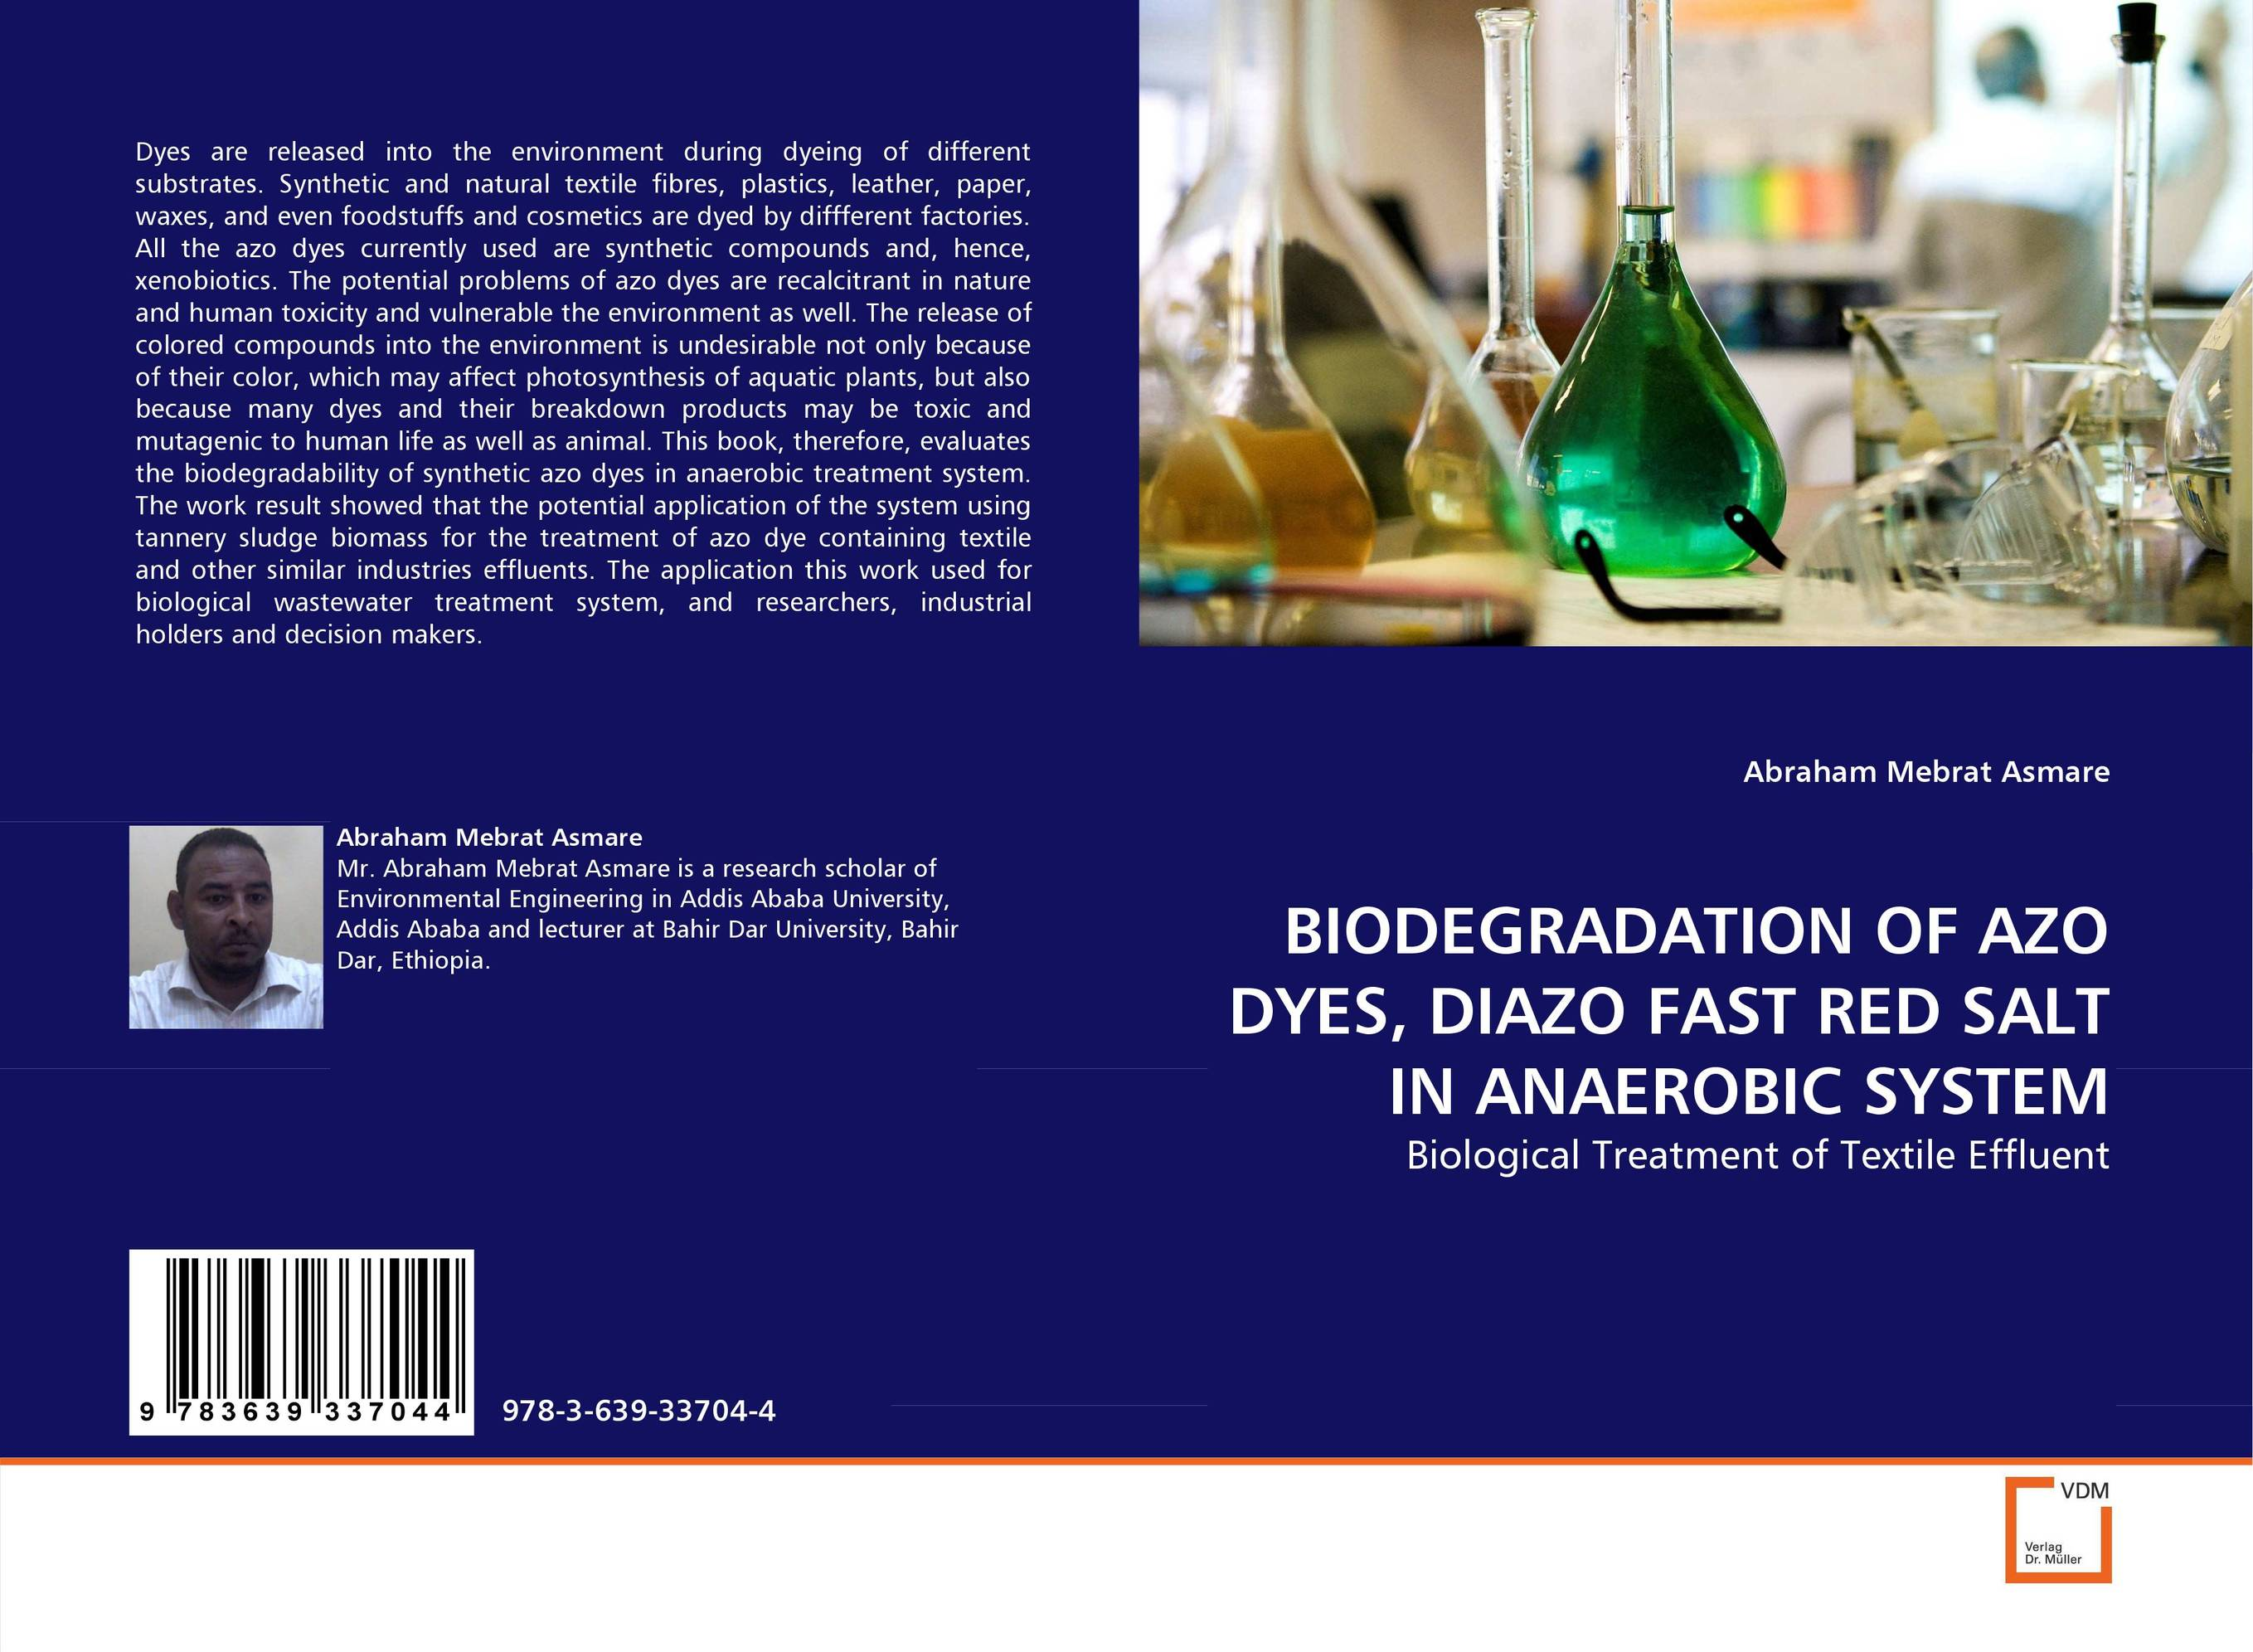 BIODEGRADATION OF AZO DYES, DIAZO FAST RED SALT IN ANAEROBIC SYSTEM